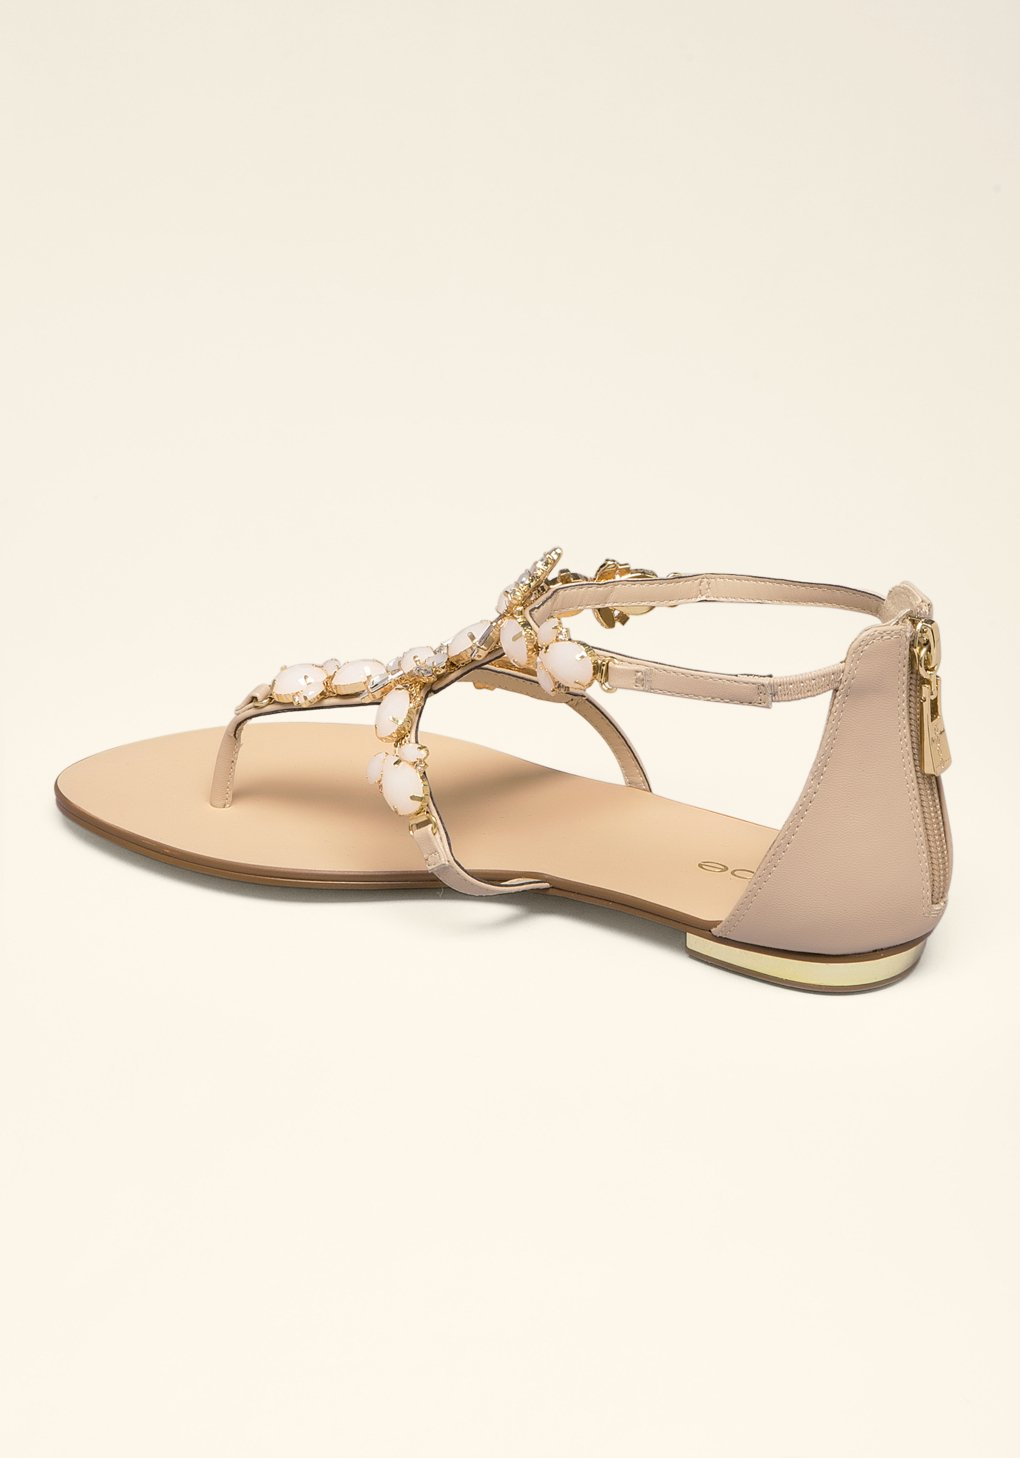 Lyst - Bebe Dayna Jeweled Flat Sandals In Natural